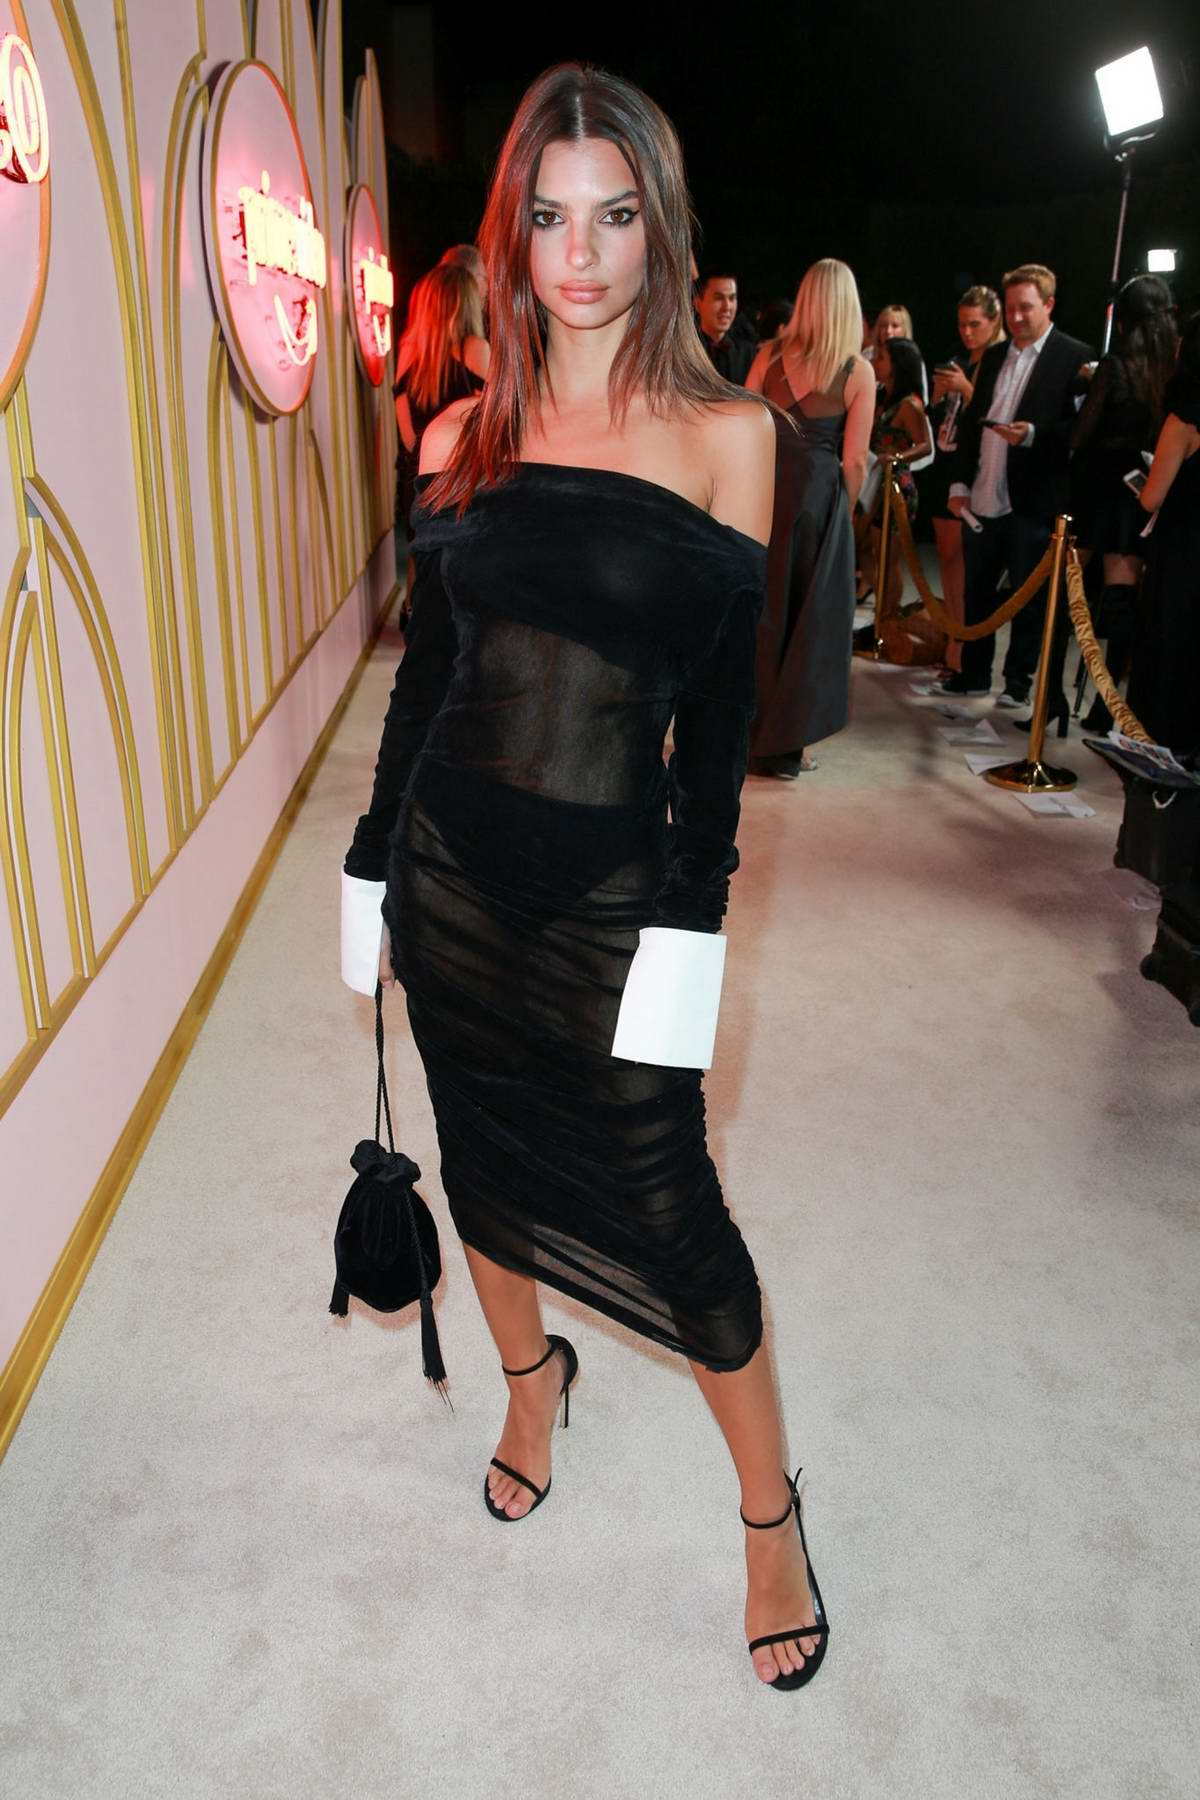 Emily Ratajkowski at the Amazon Prime Video Emmy Awards Party 2018 in West Hollywood, Los Angeles